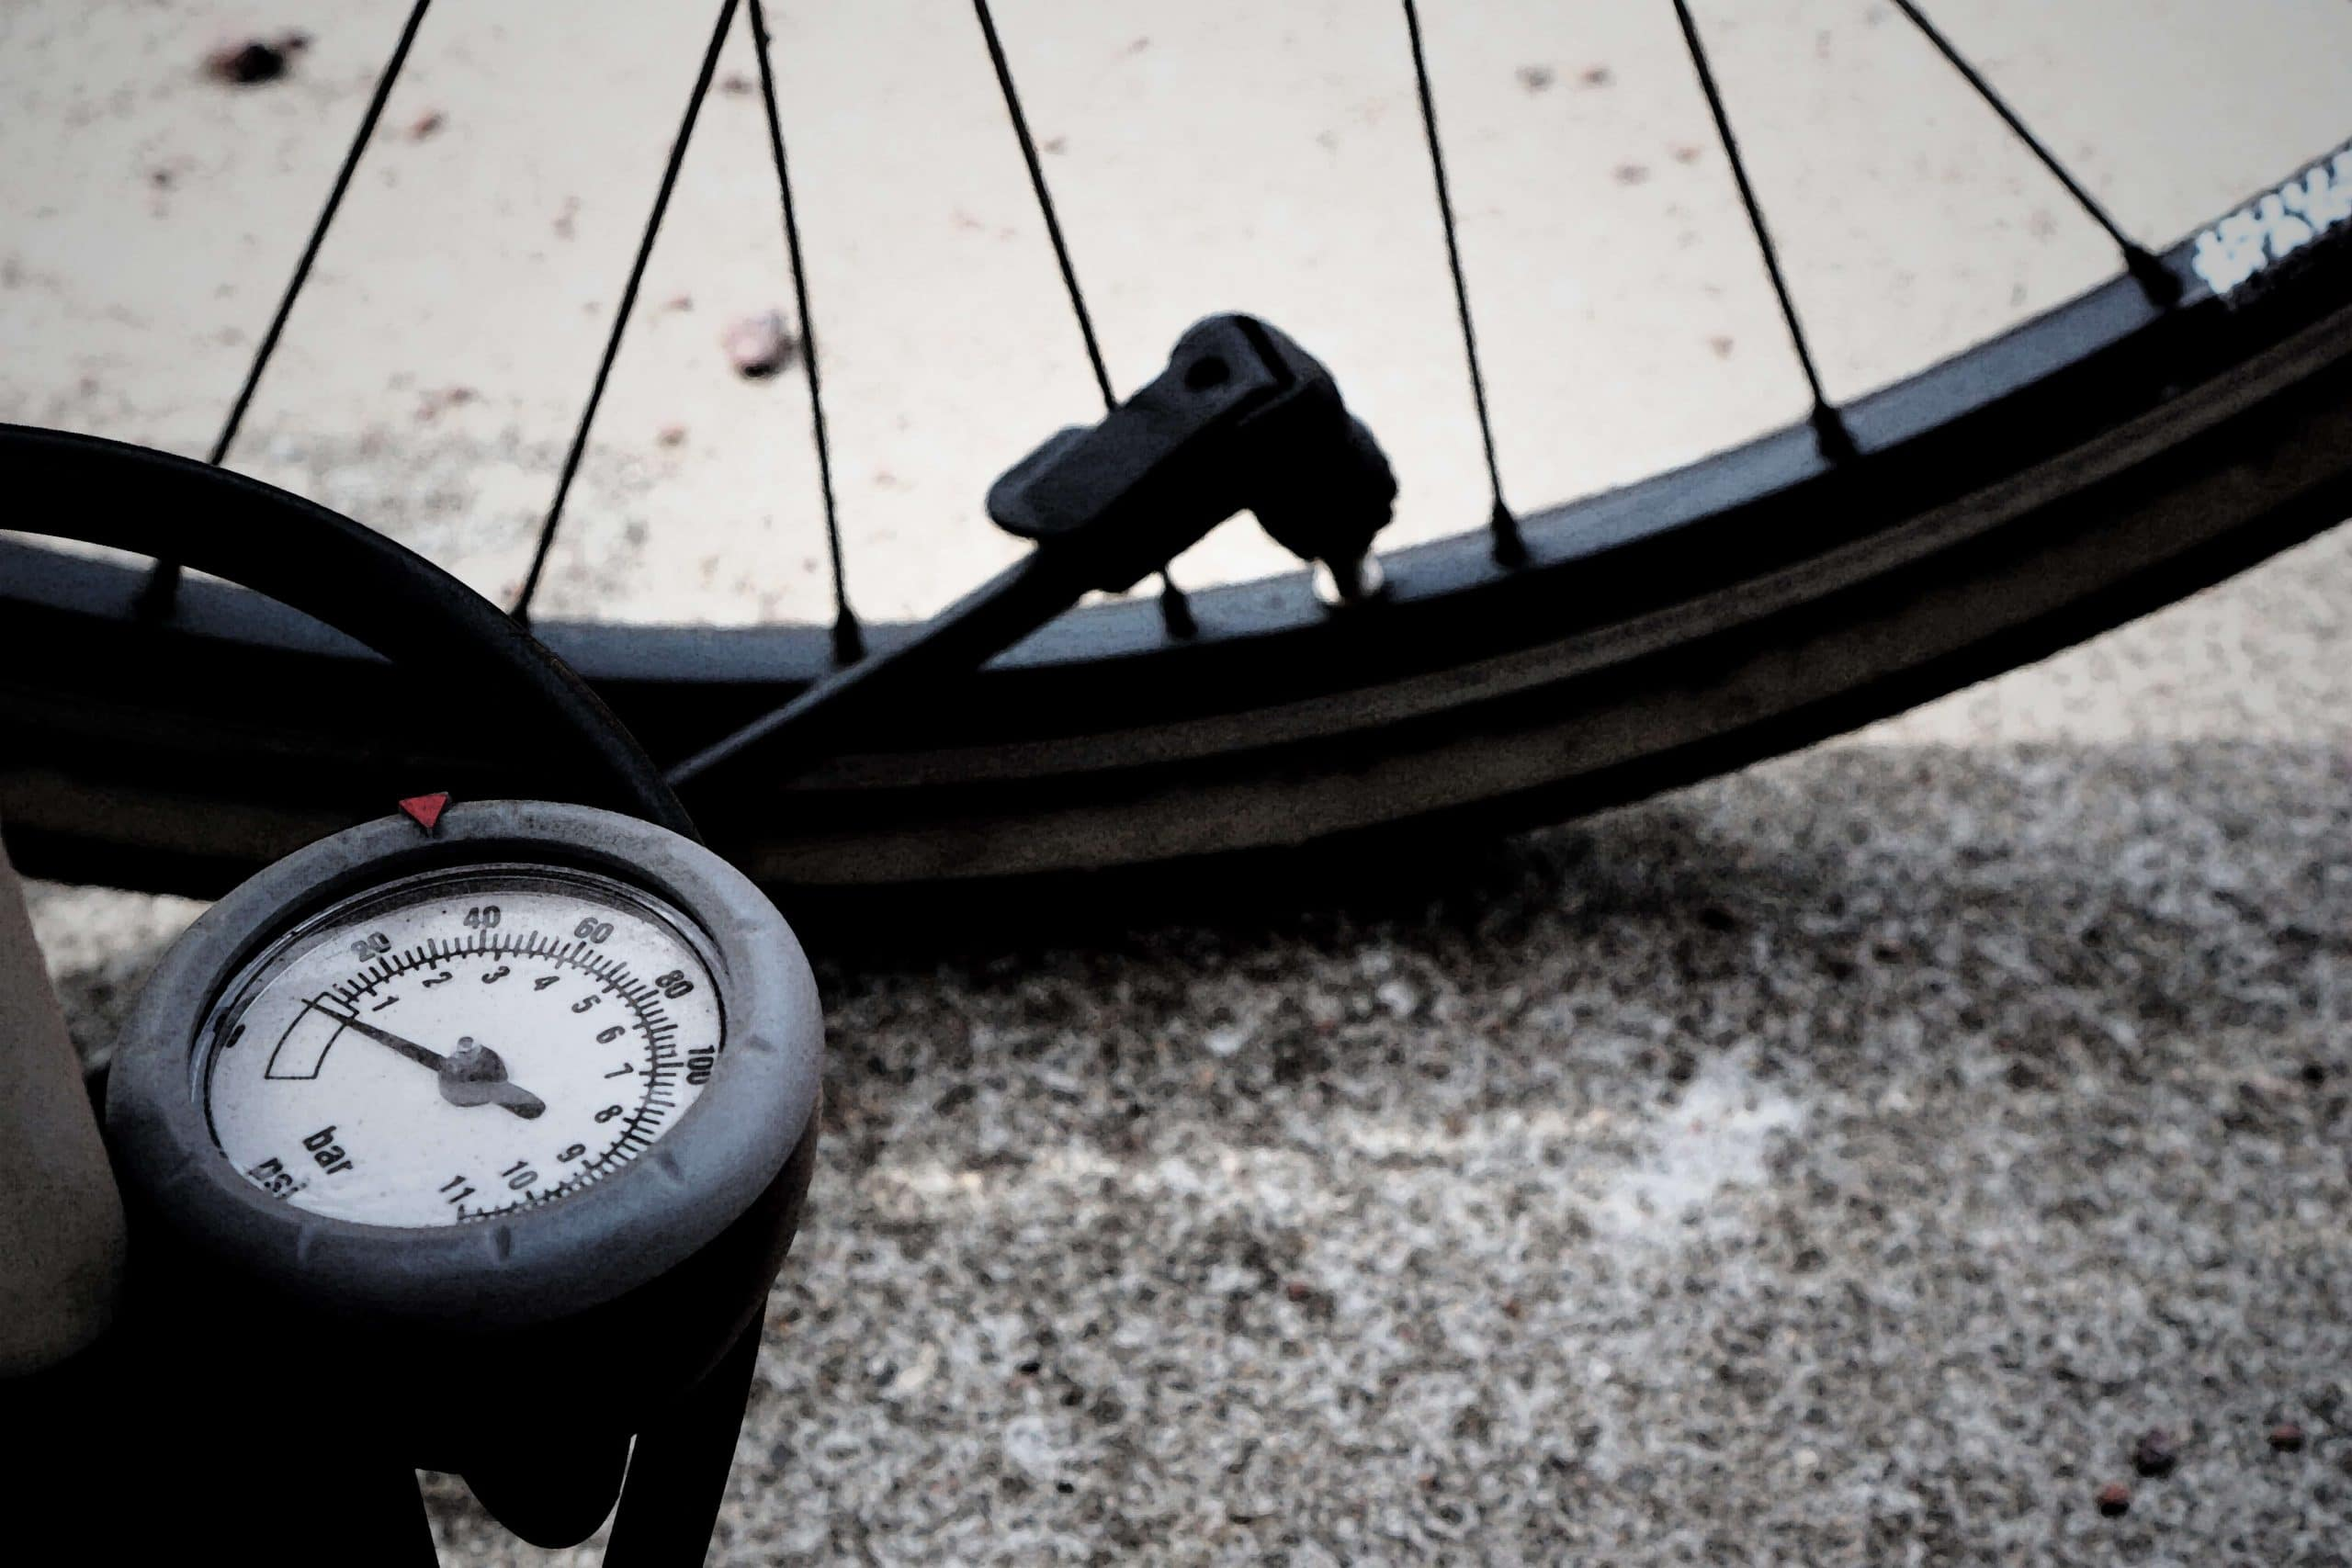 bicycle tire pressure gauge attached to bike tire